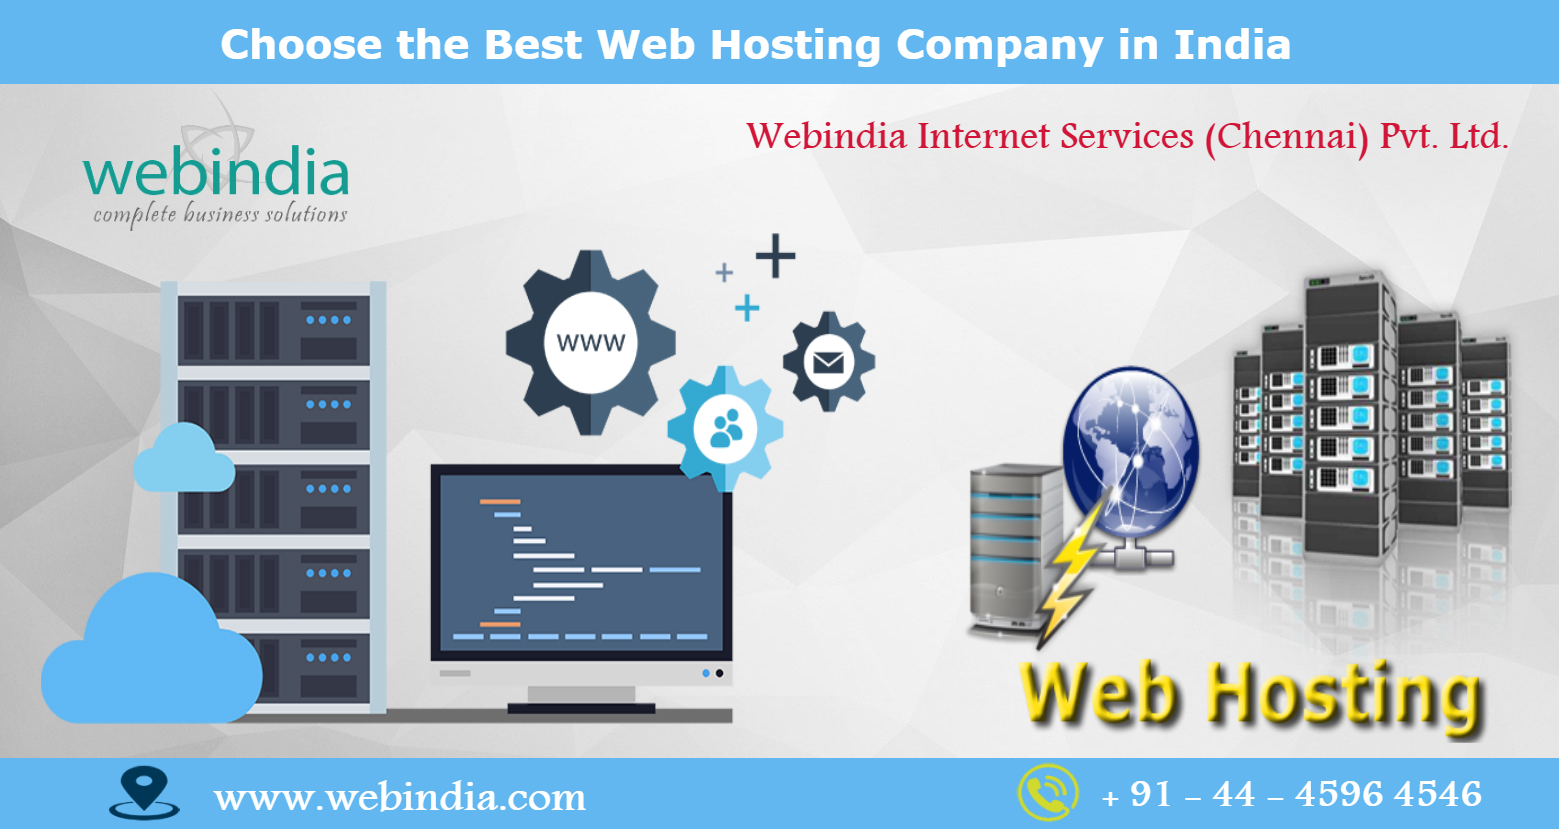 Image for Choose the Best Web Hosting Company in India